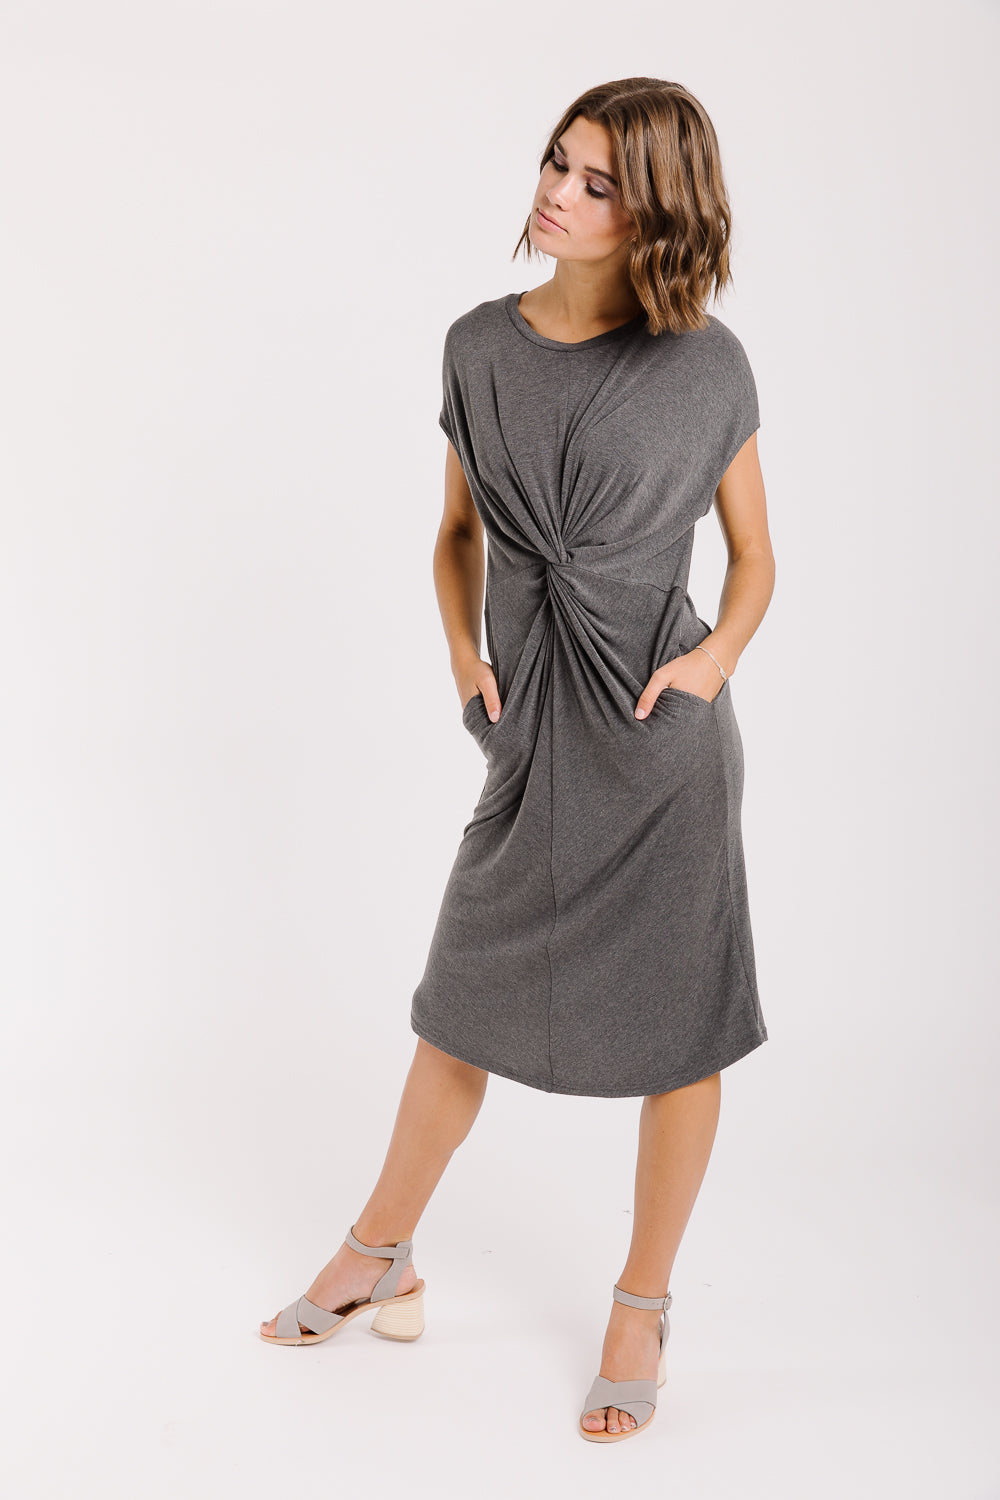 Piper & Scoot: The Park Twisted Knot Dress in Slate